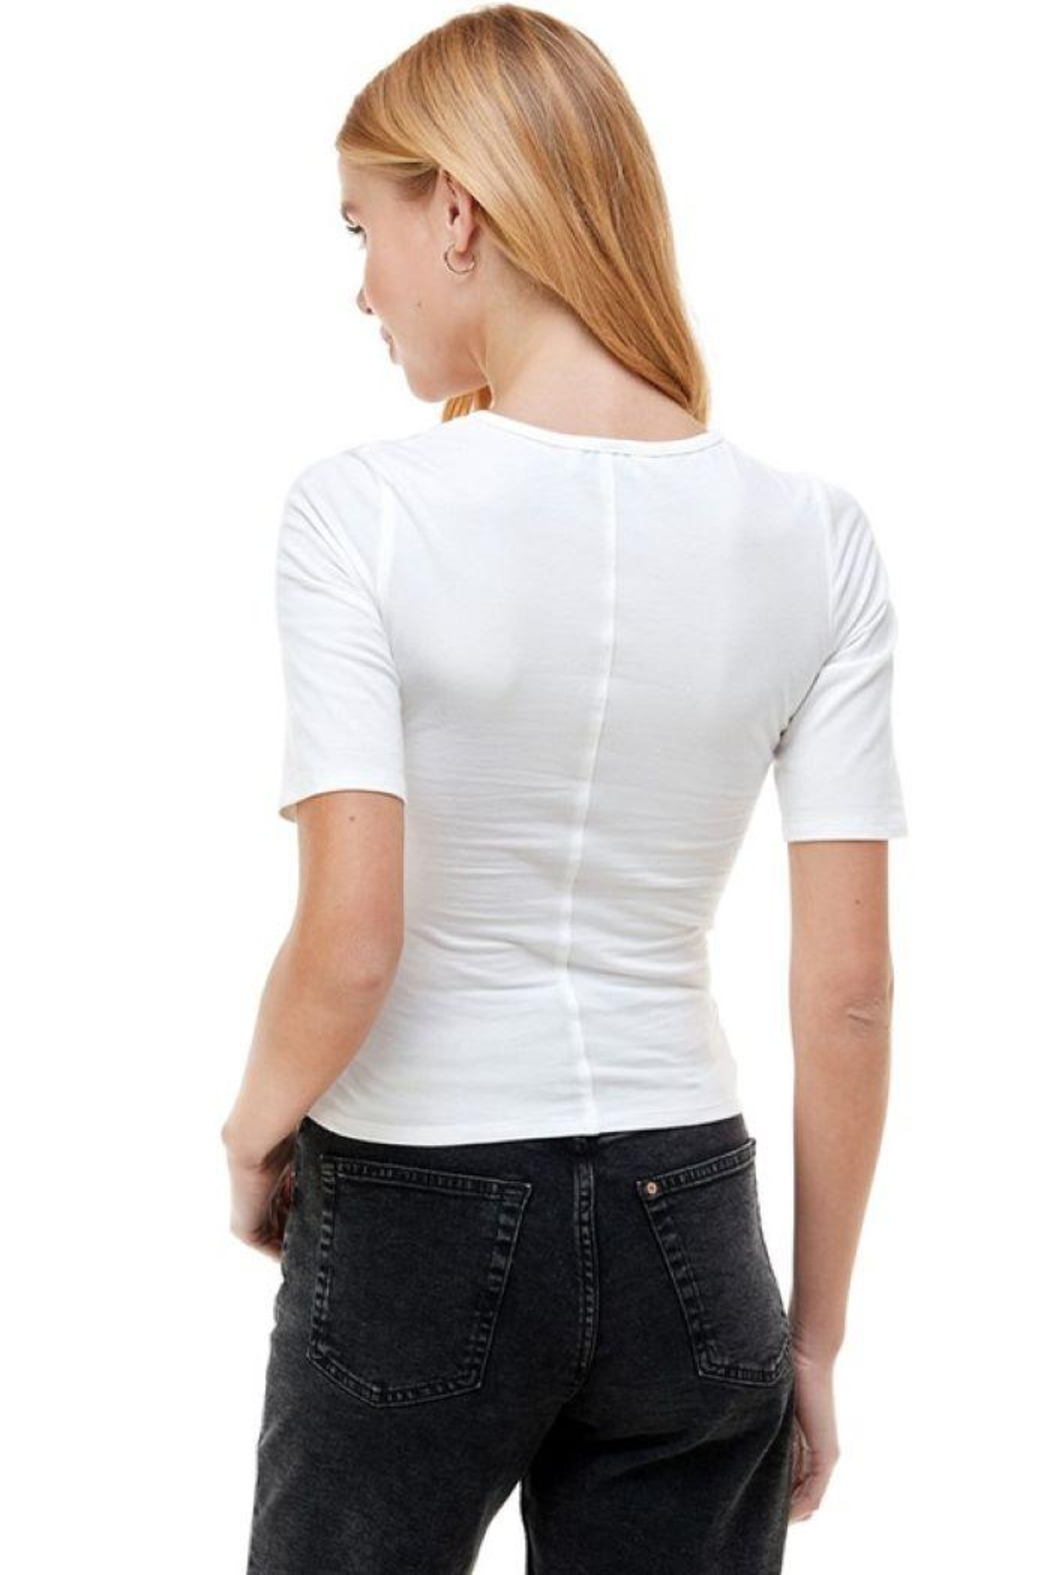 ACOA Wrap Front Detail Knit Short Sleeve Top - Front Full Image